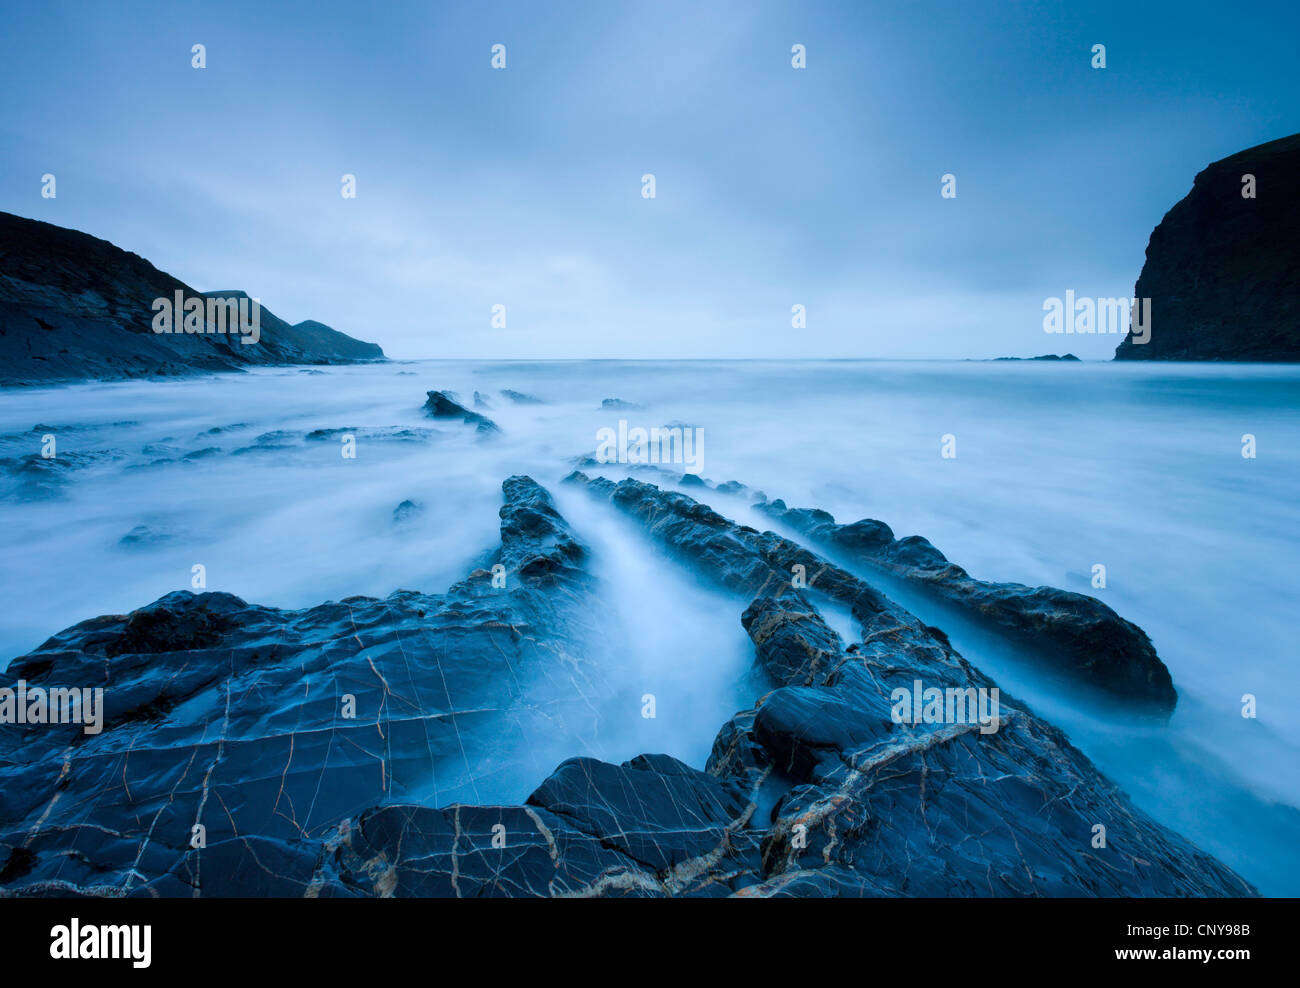 Rugged shores of Crackington Haven, a cove in North Cornwall, England. Winter (March) 2009 - Stock Image